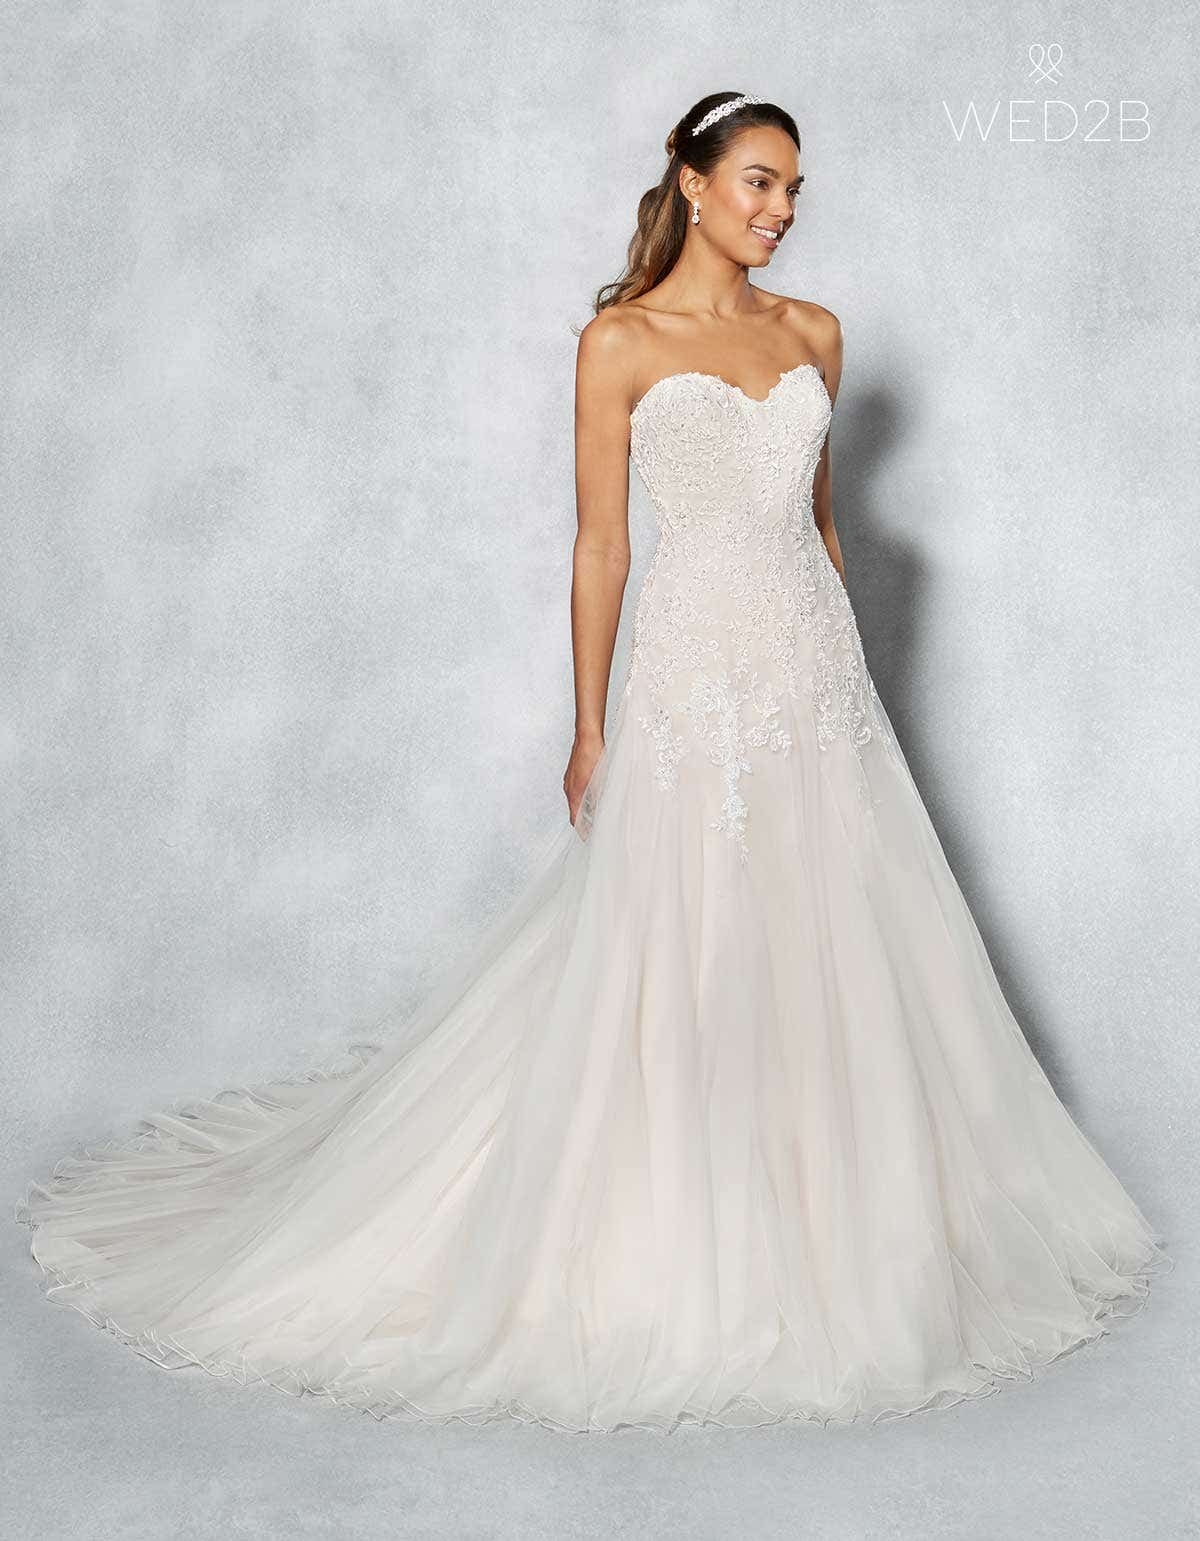 c844f3bee4e Arizona - A soft sweetheart neckline and a waist defining lace up back